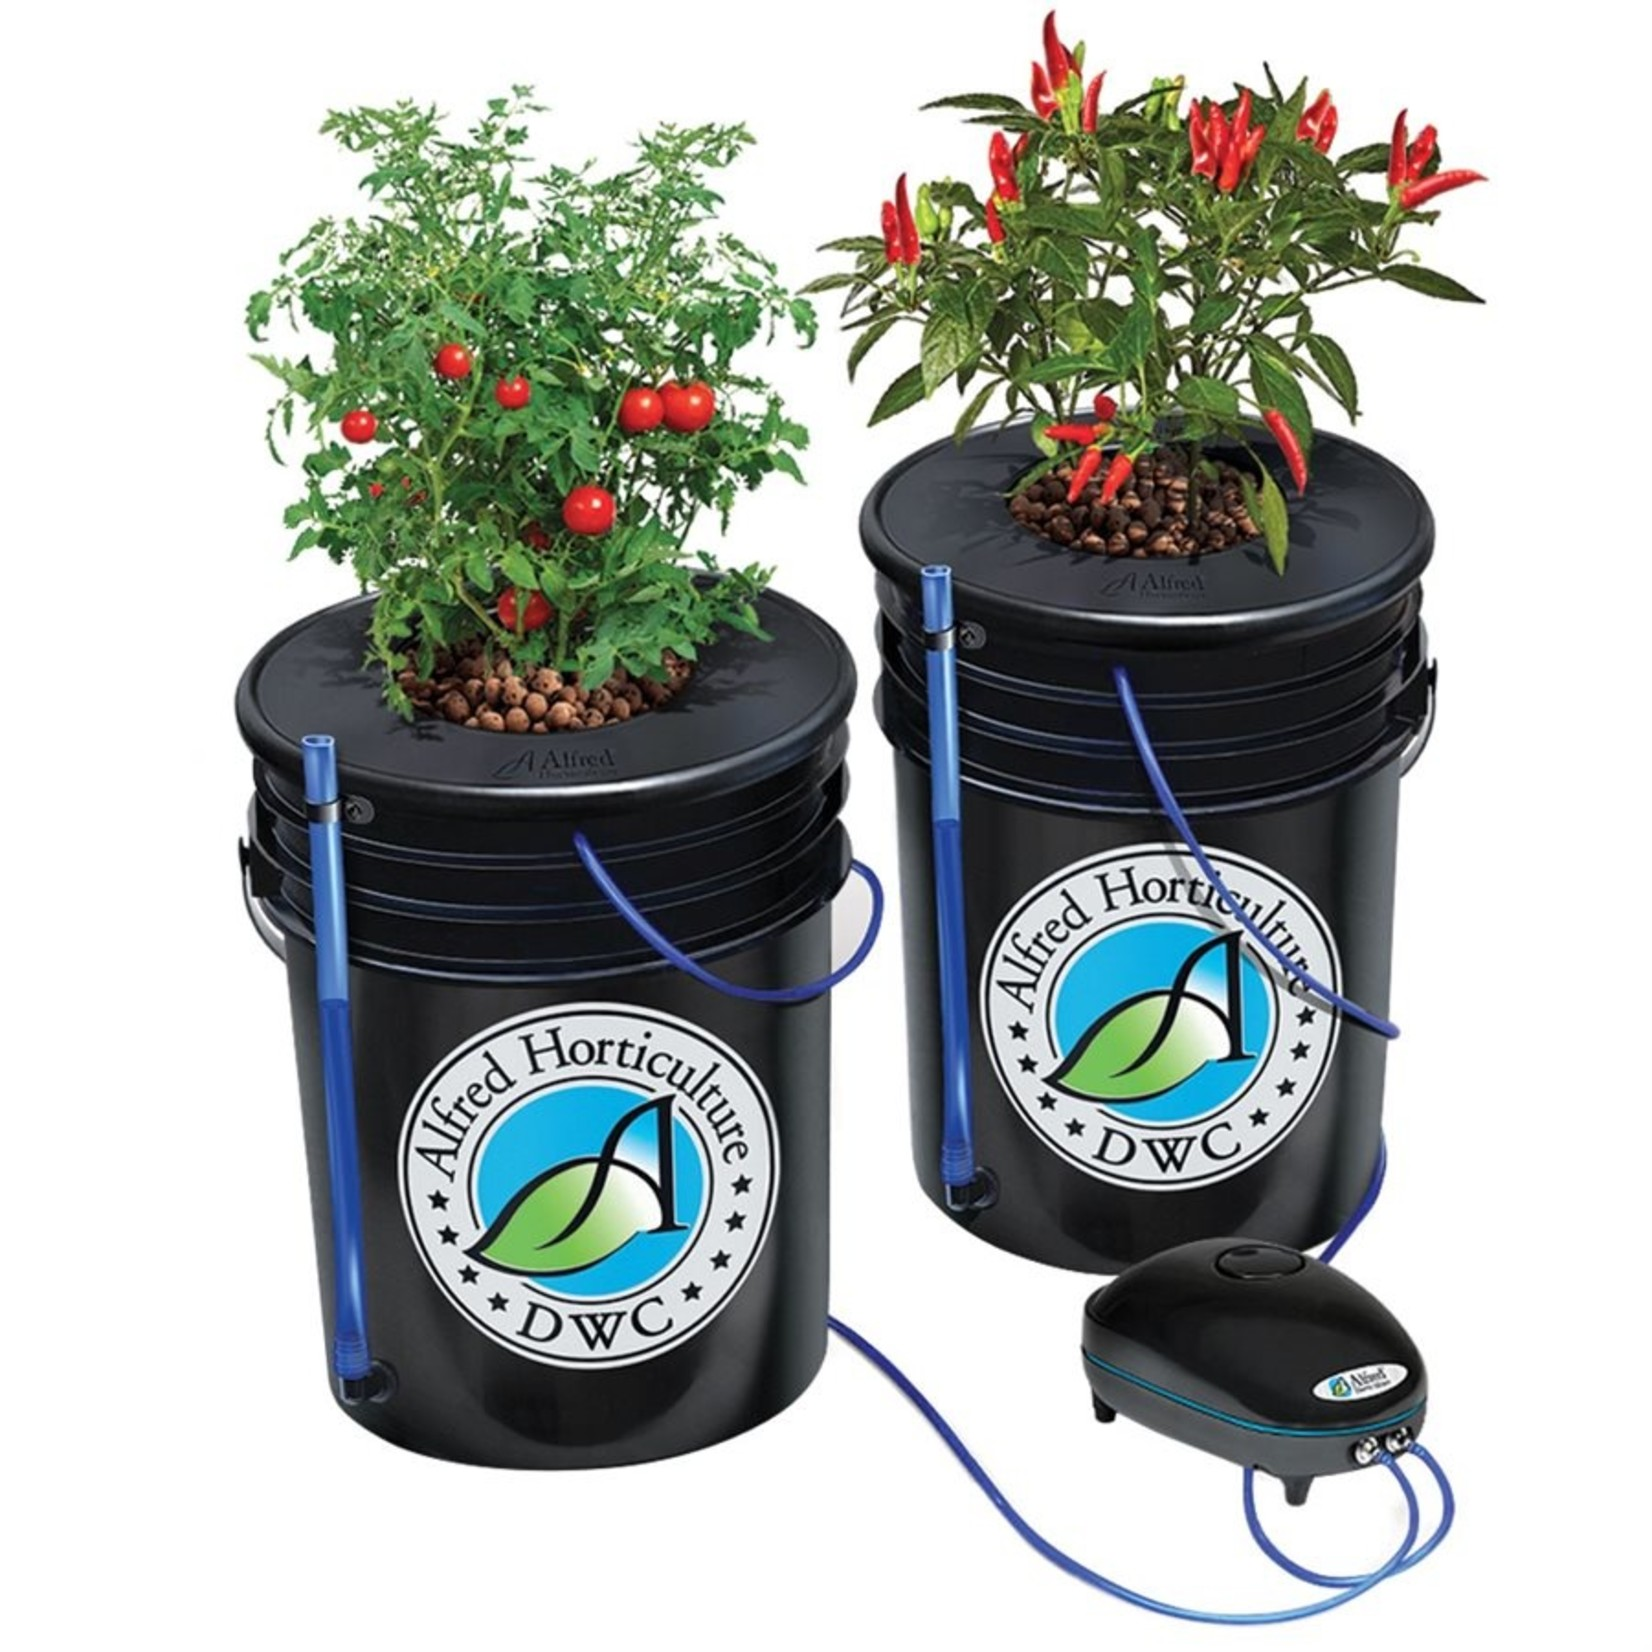 Alfred Alfred DWC Grow Kit